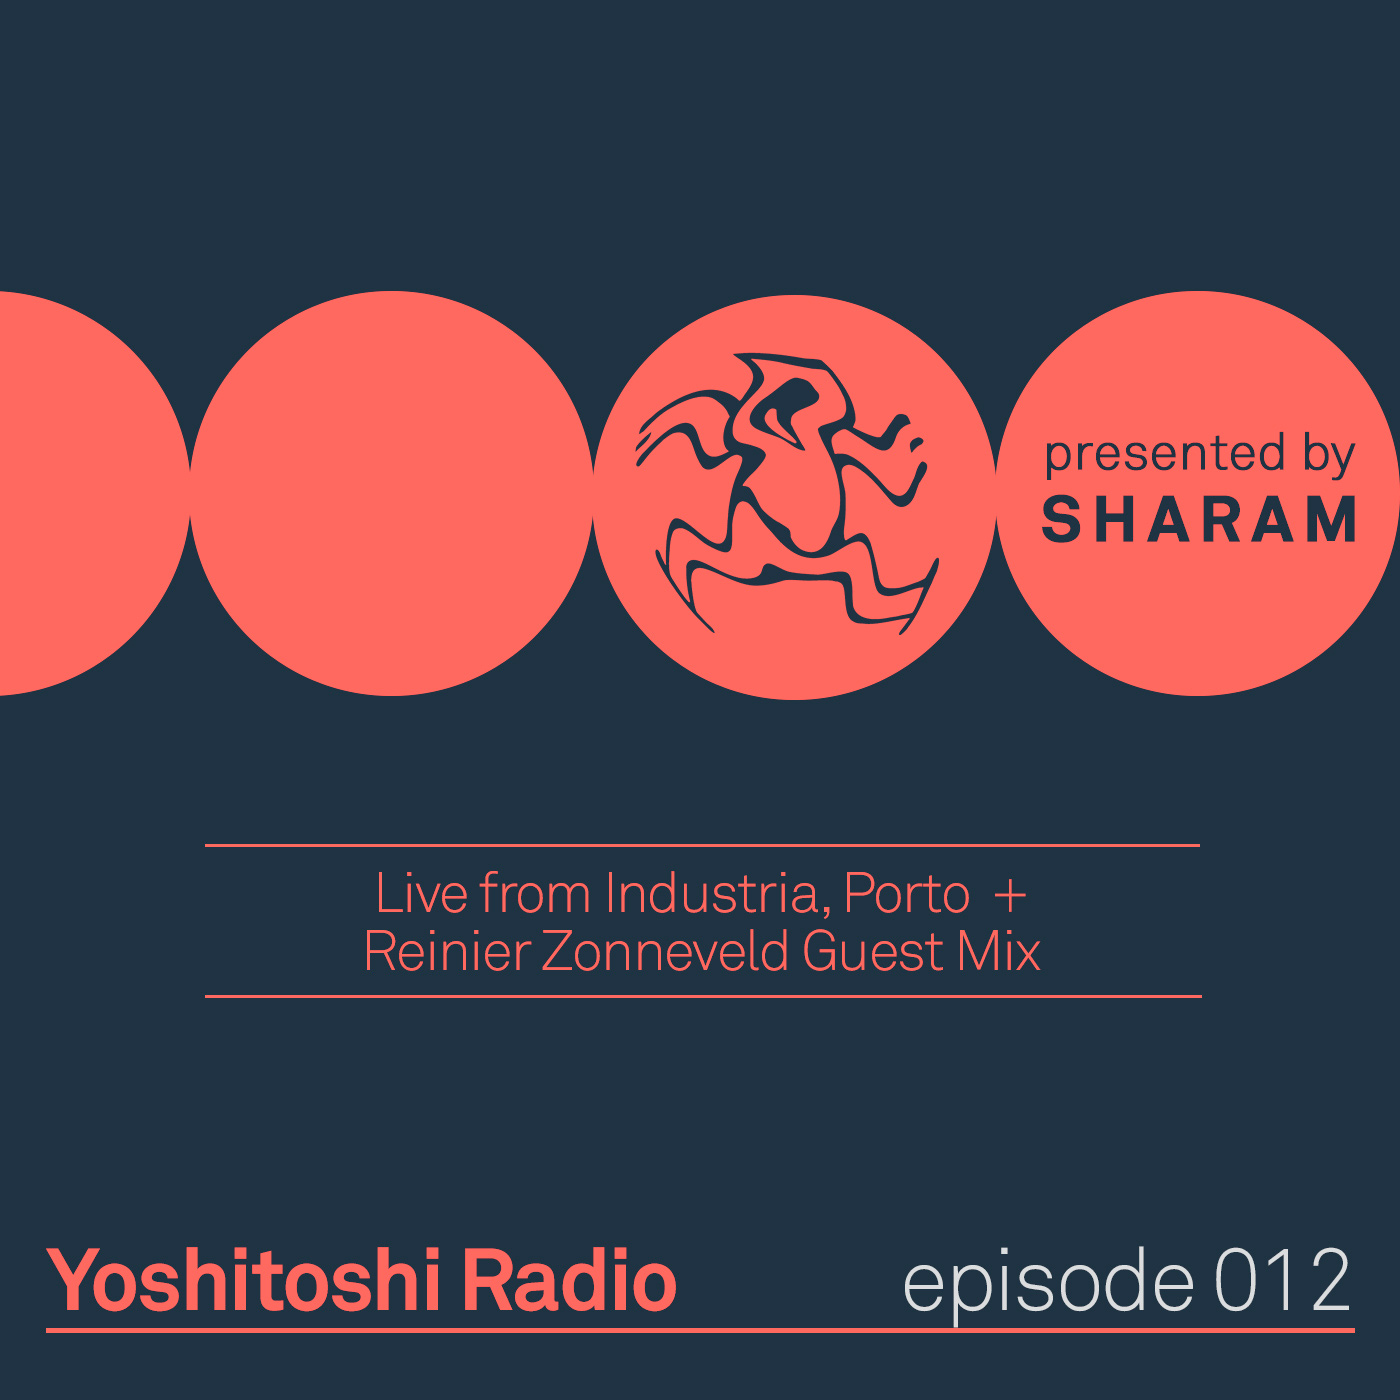 Yoshitoshi Radio :: Episode 012, Live at Industria Porto + Reinier Zonneveld Guest Mix (aired on October 21st, 2017) banner logo